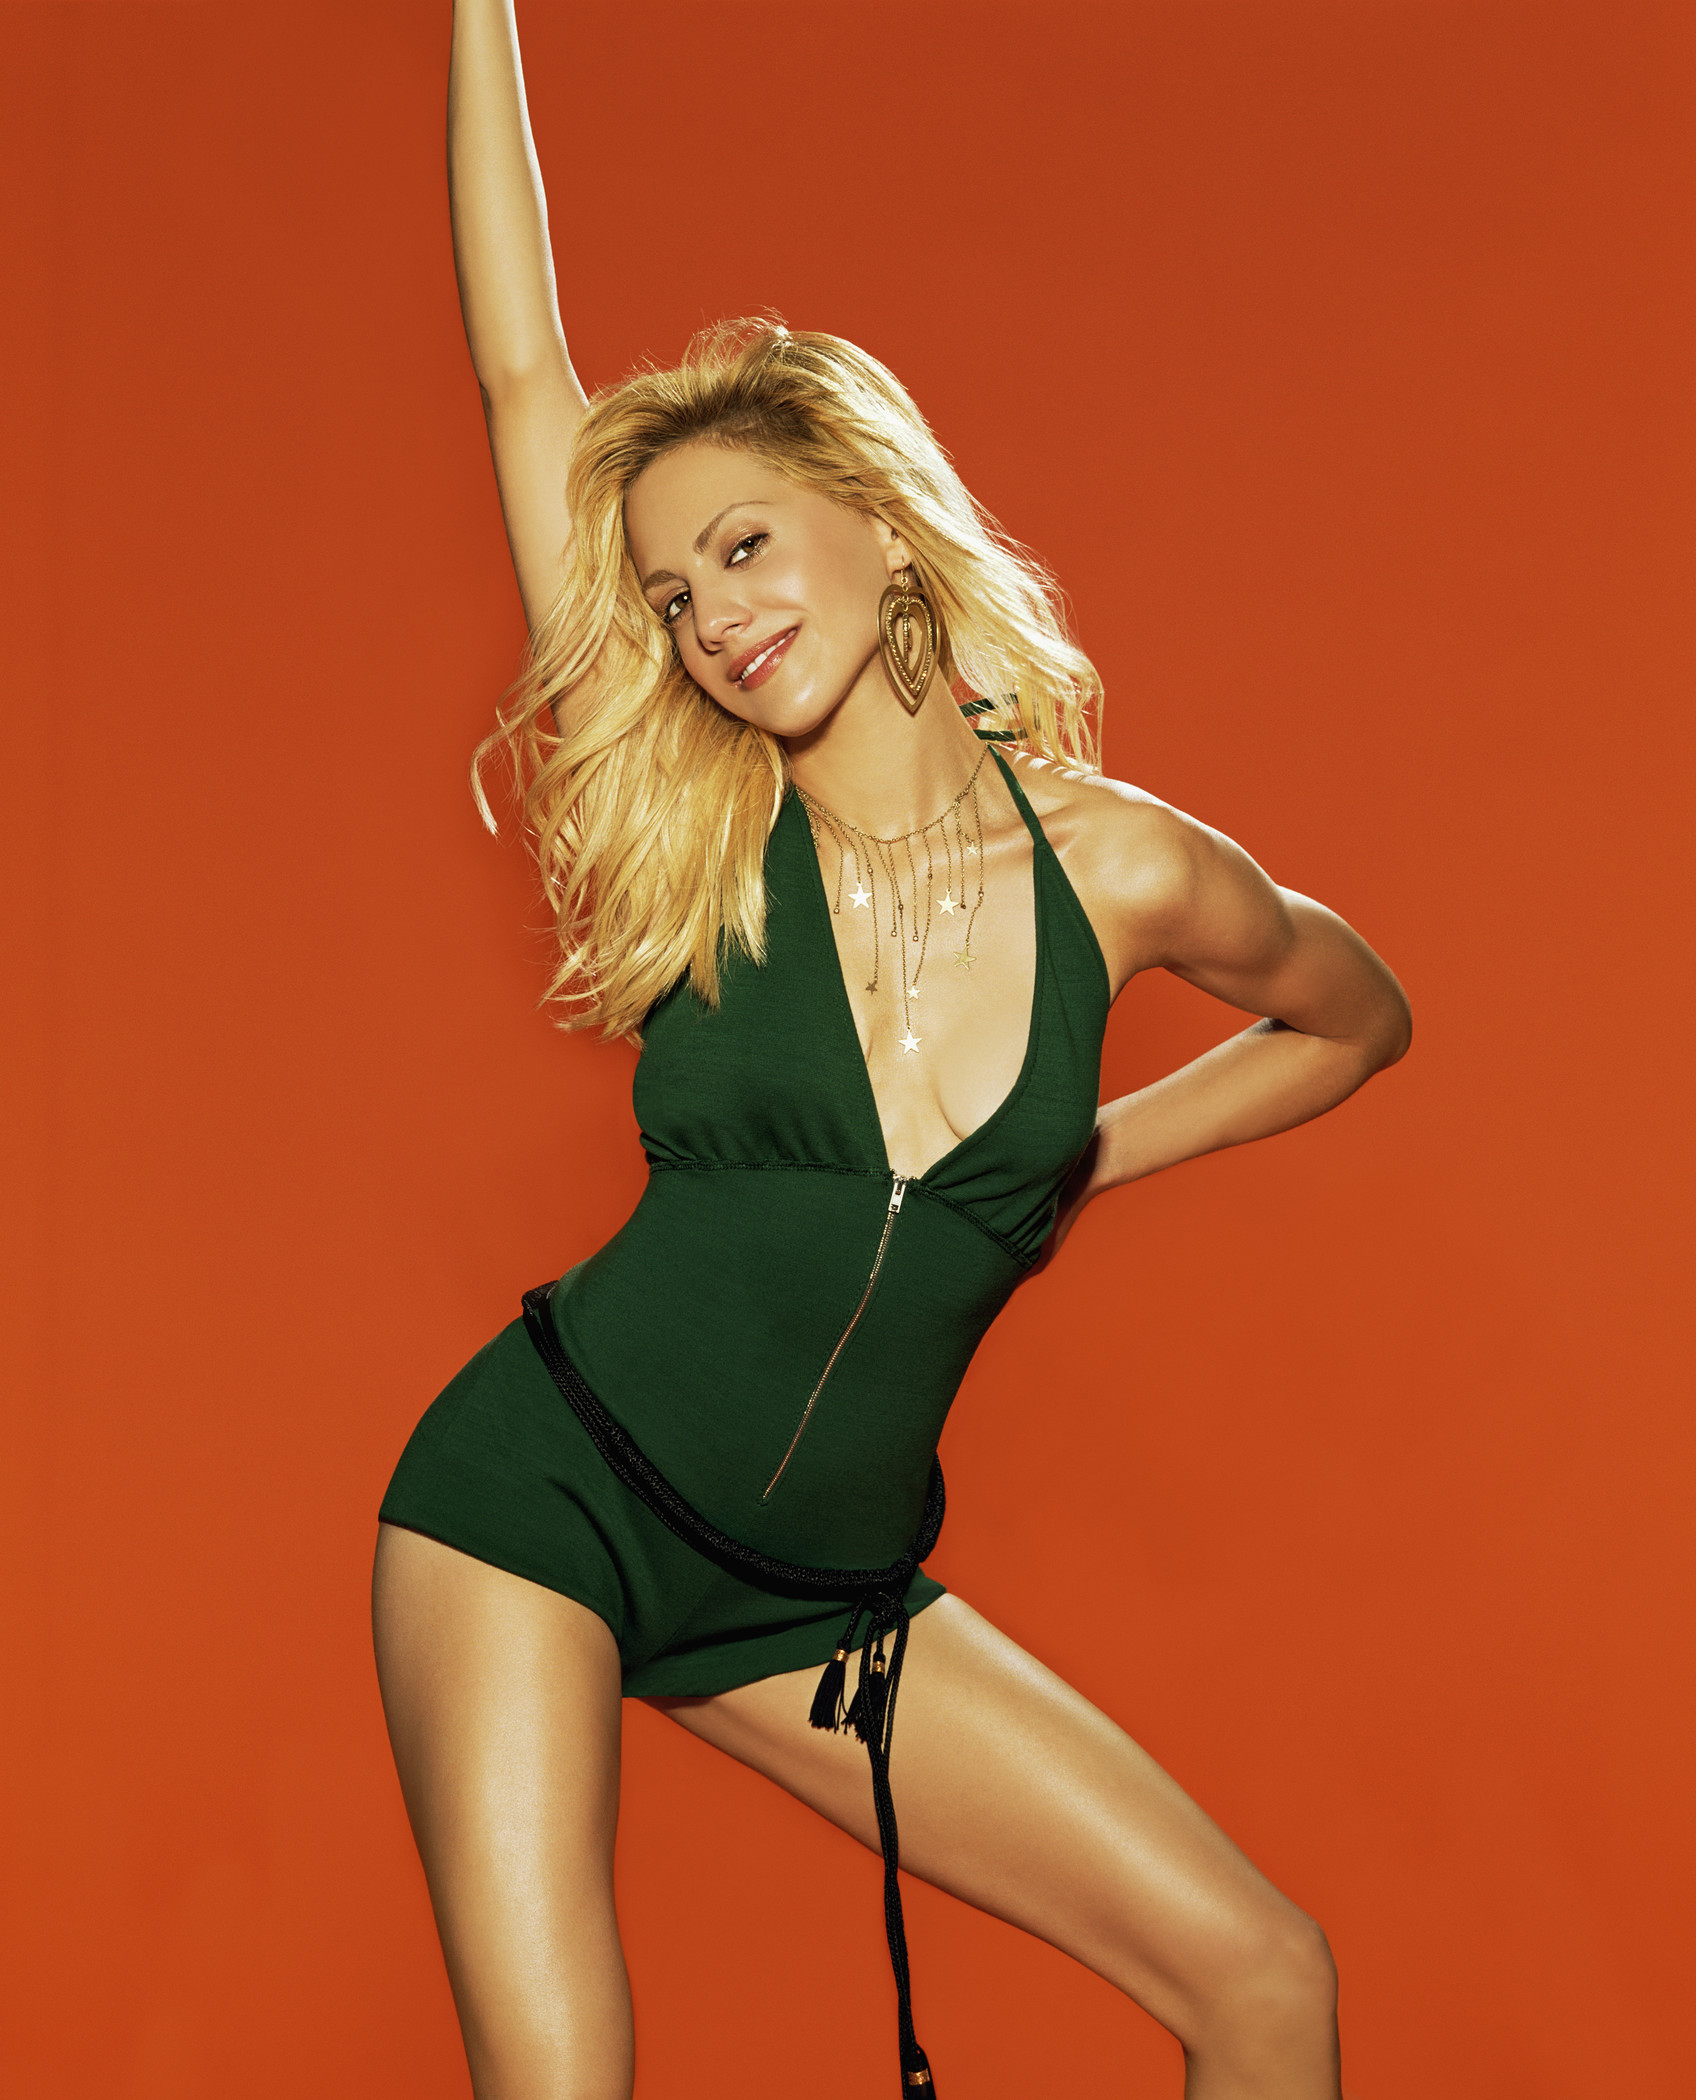 80599_Brittany_Murphy__George_Holz_shoot_2_122_374lo.jpg